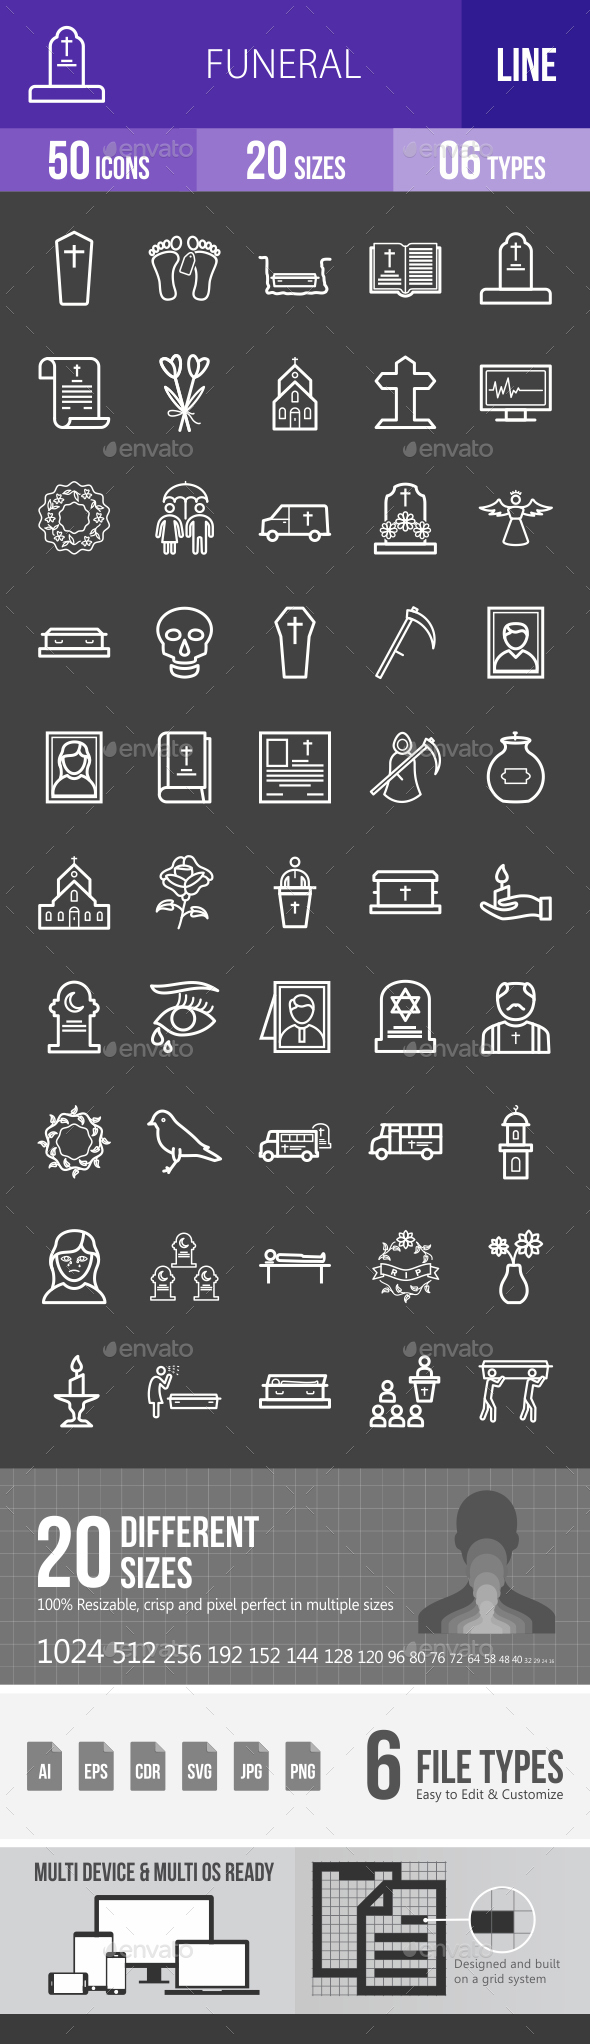 Funeral Line Inverted Icons - Icons